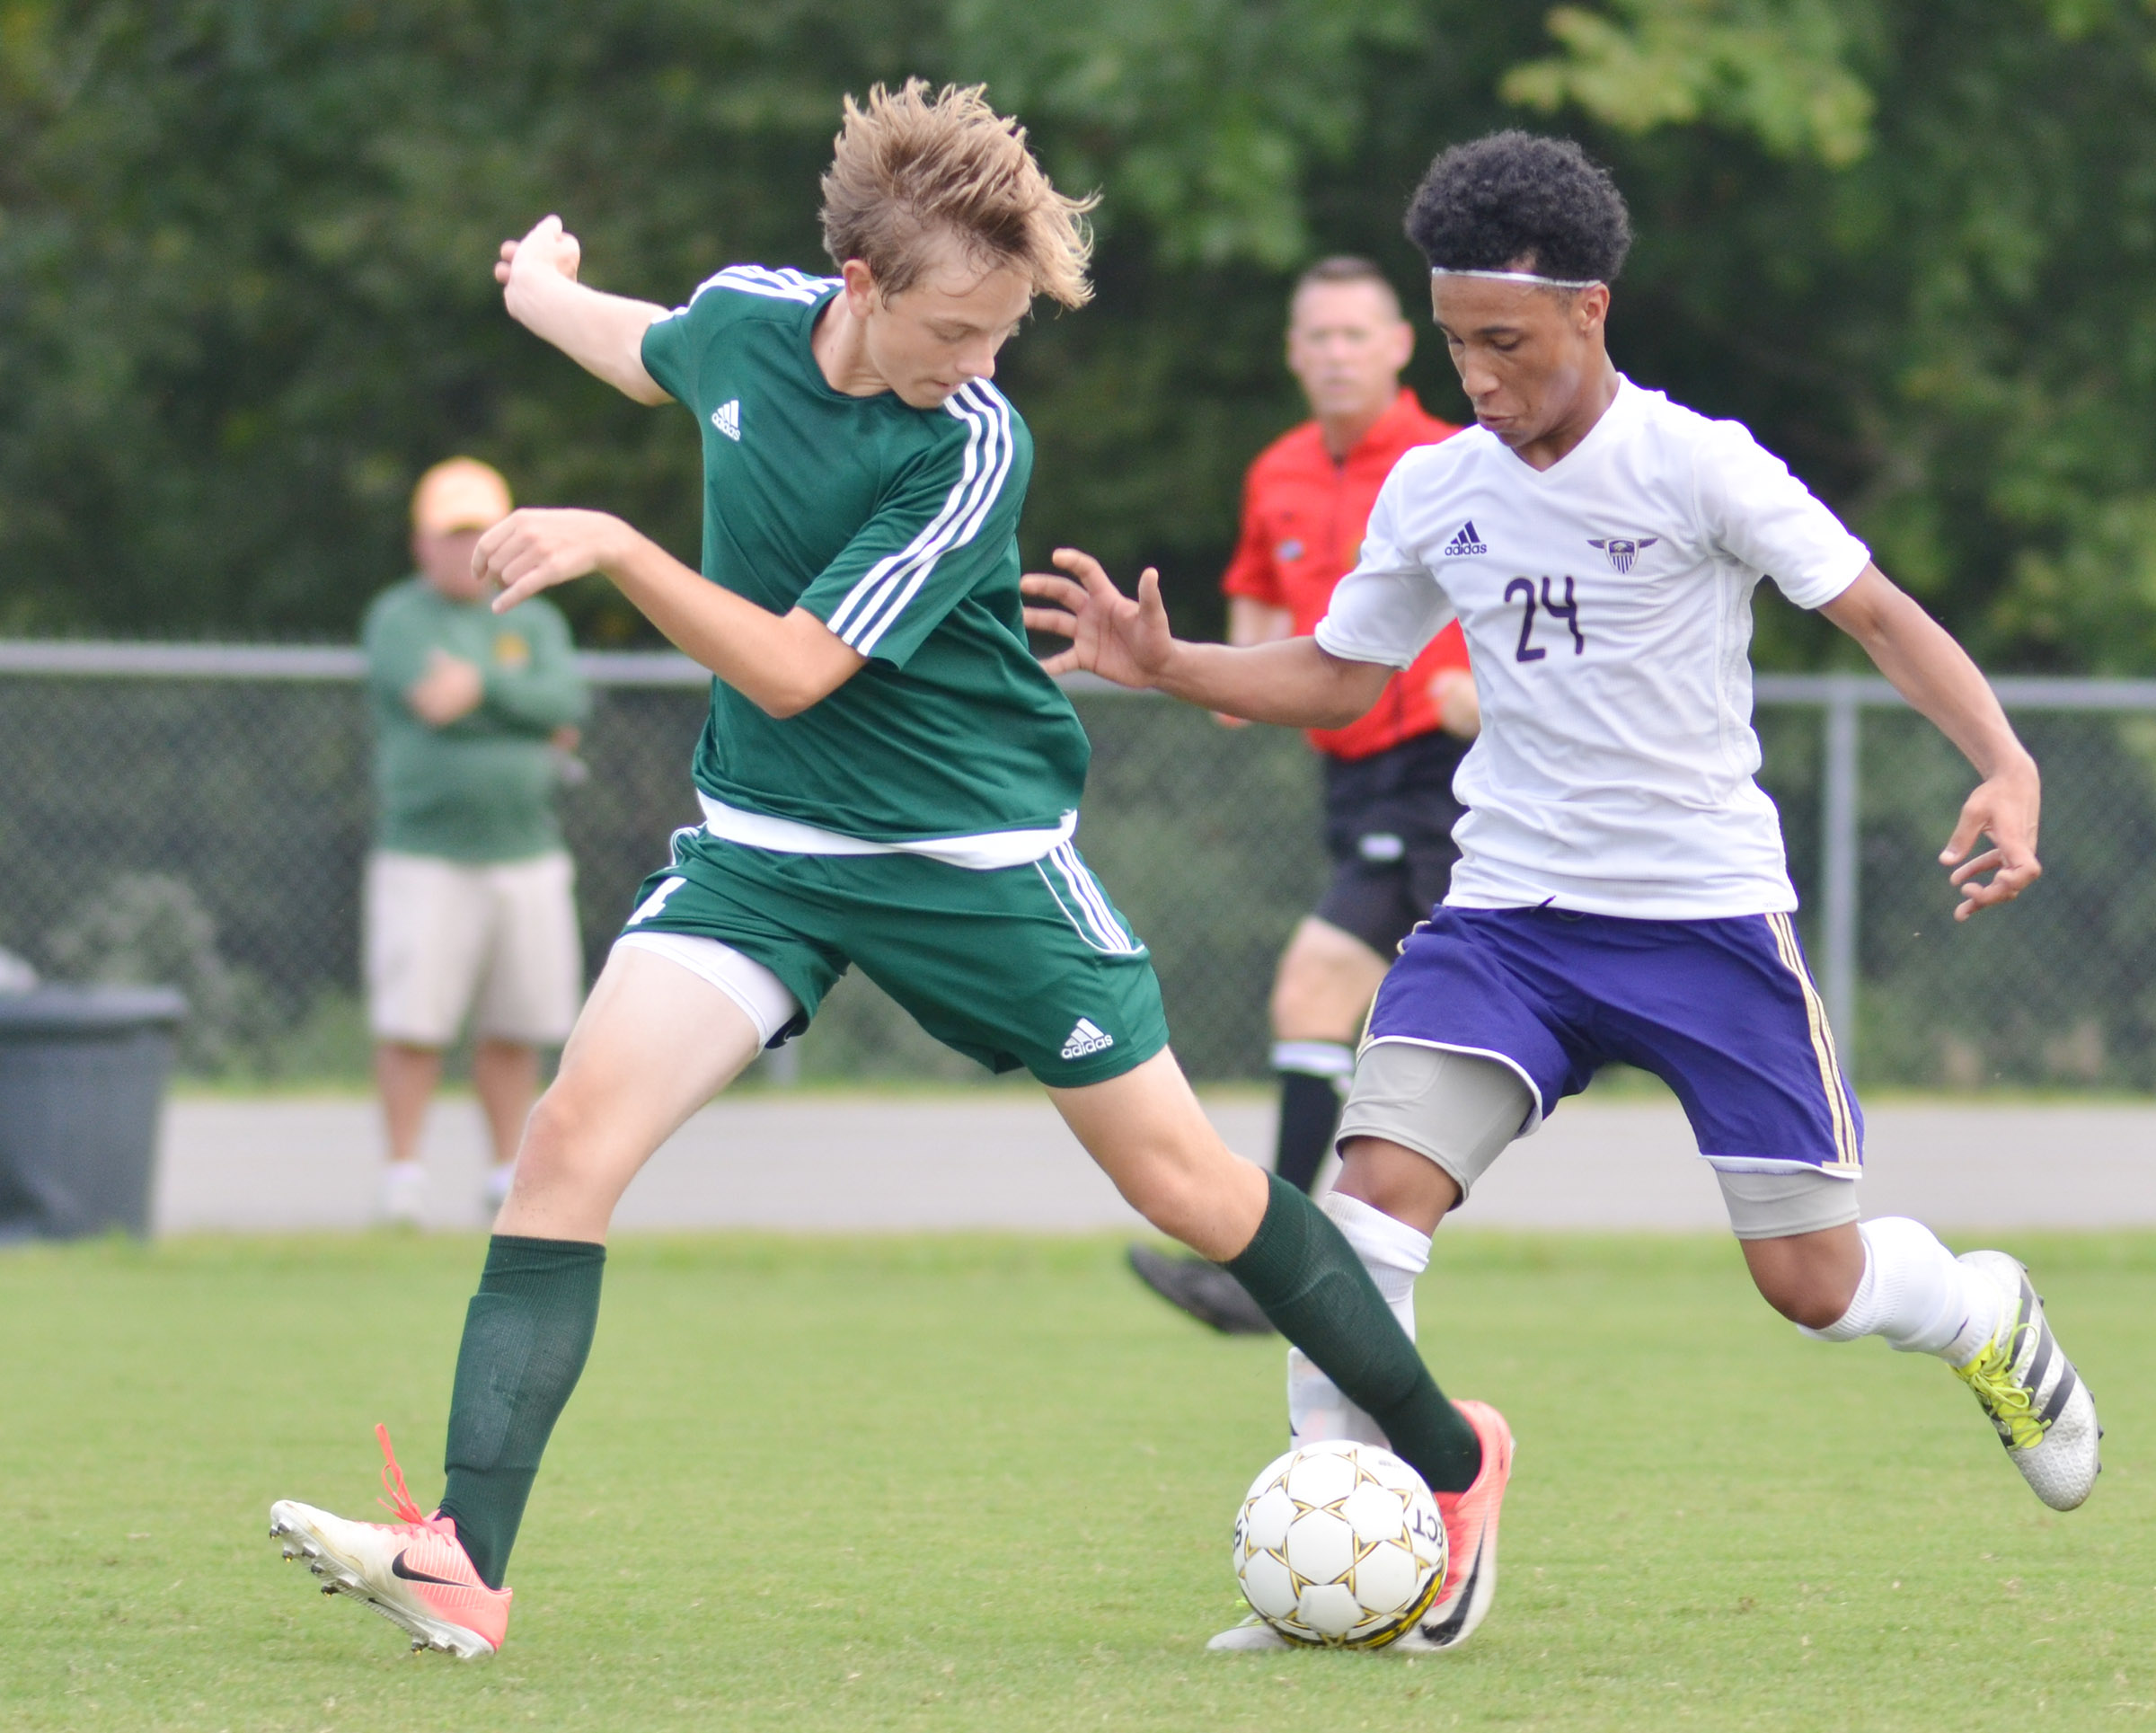 CHS junior Daniel Johnson protects the ball.